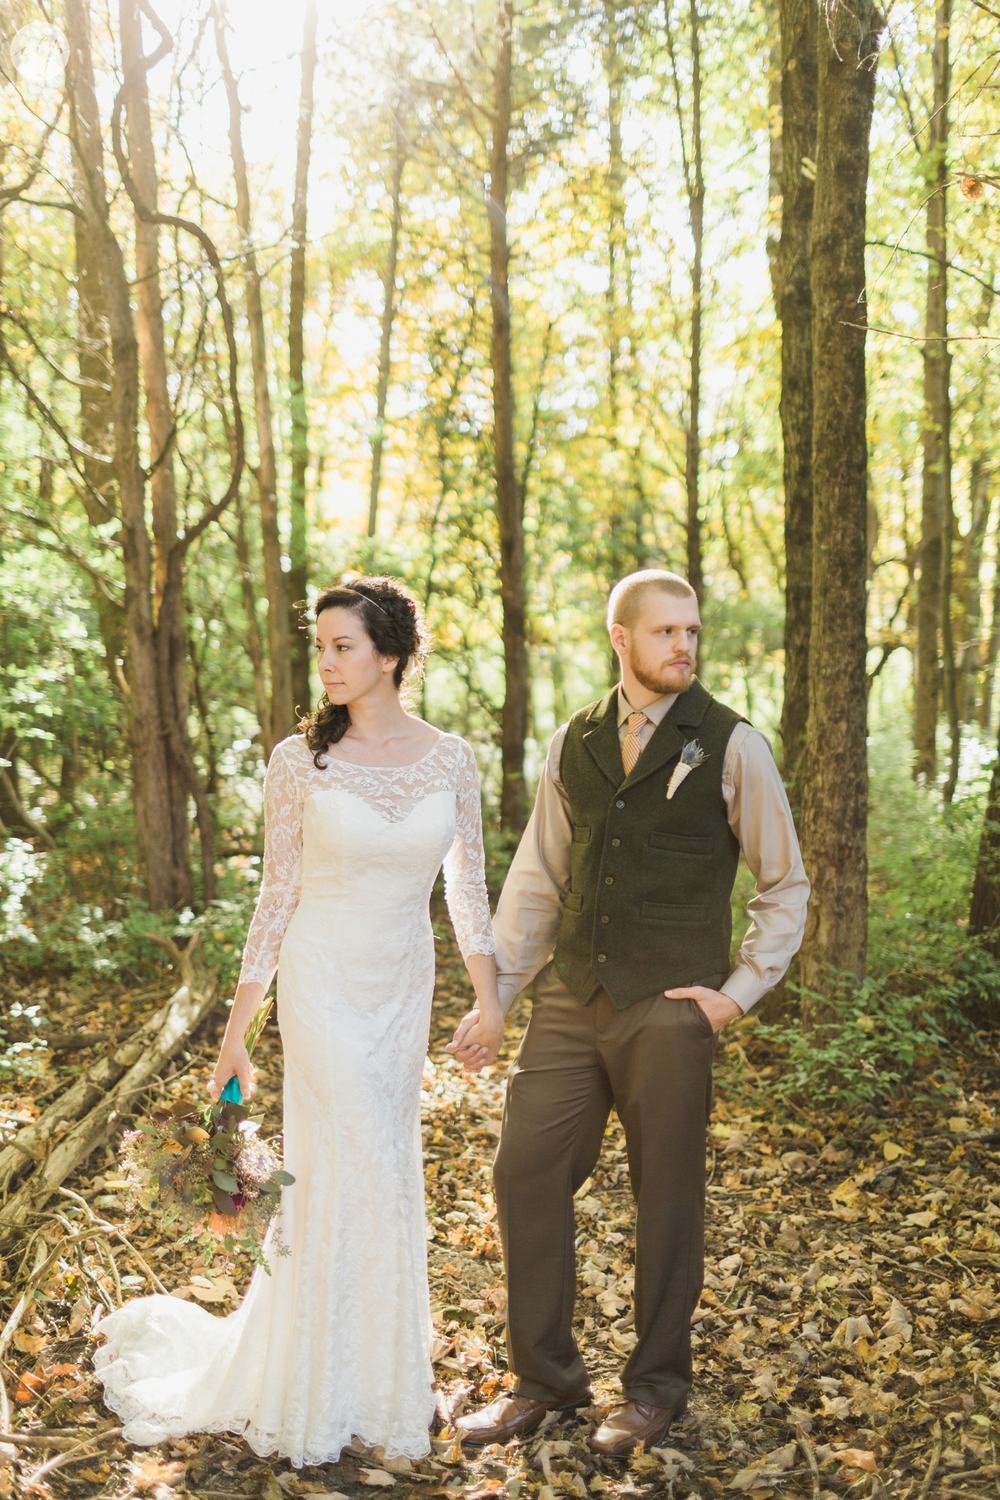 Outdoor-Wedding-in-the-Woods-Photography_4270.jpg